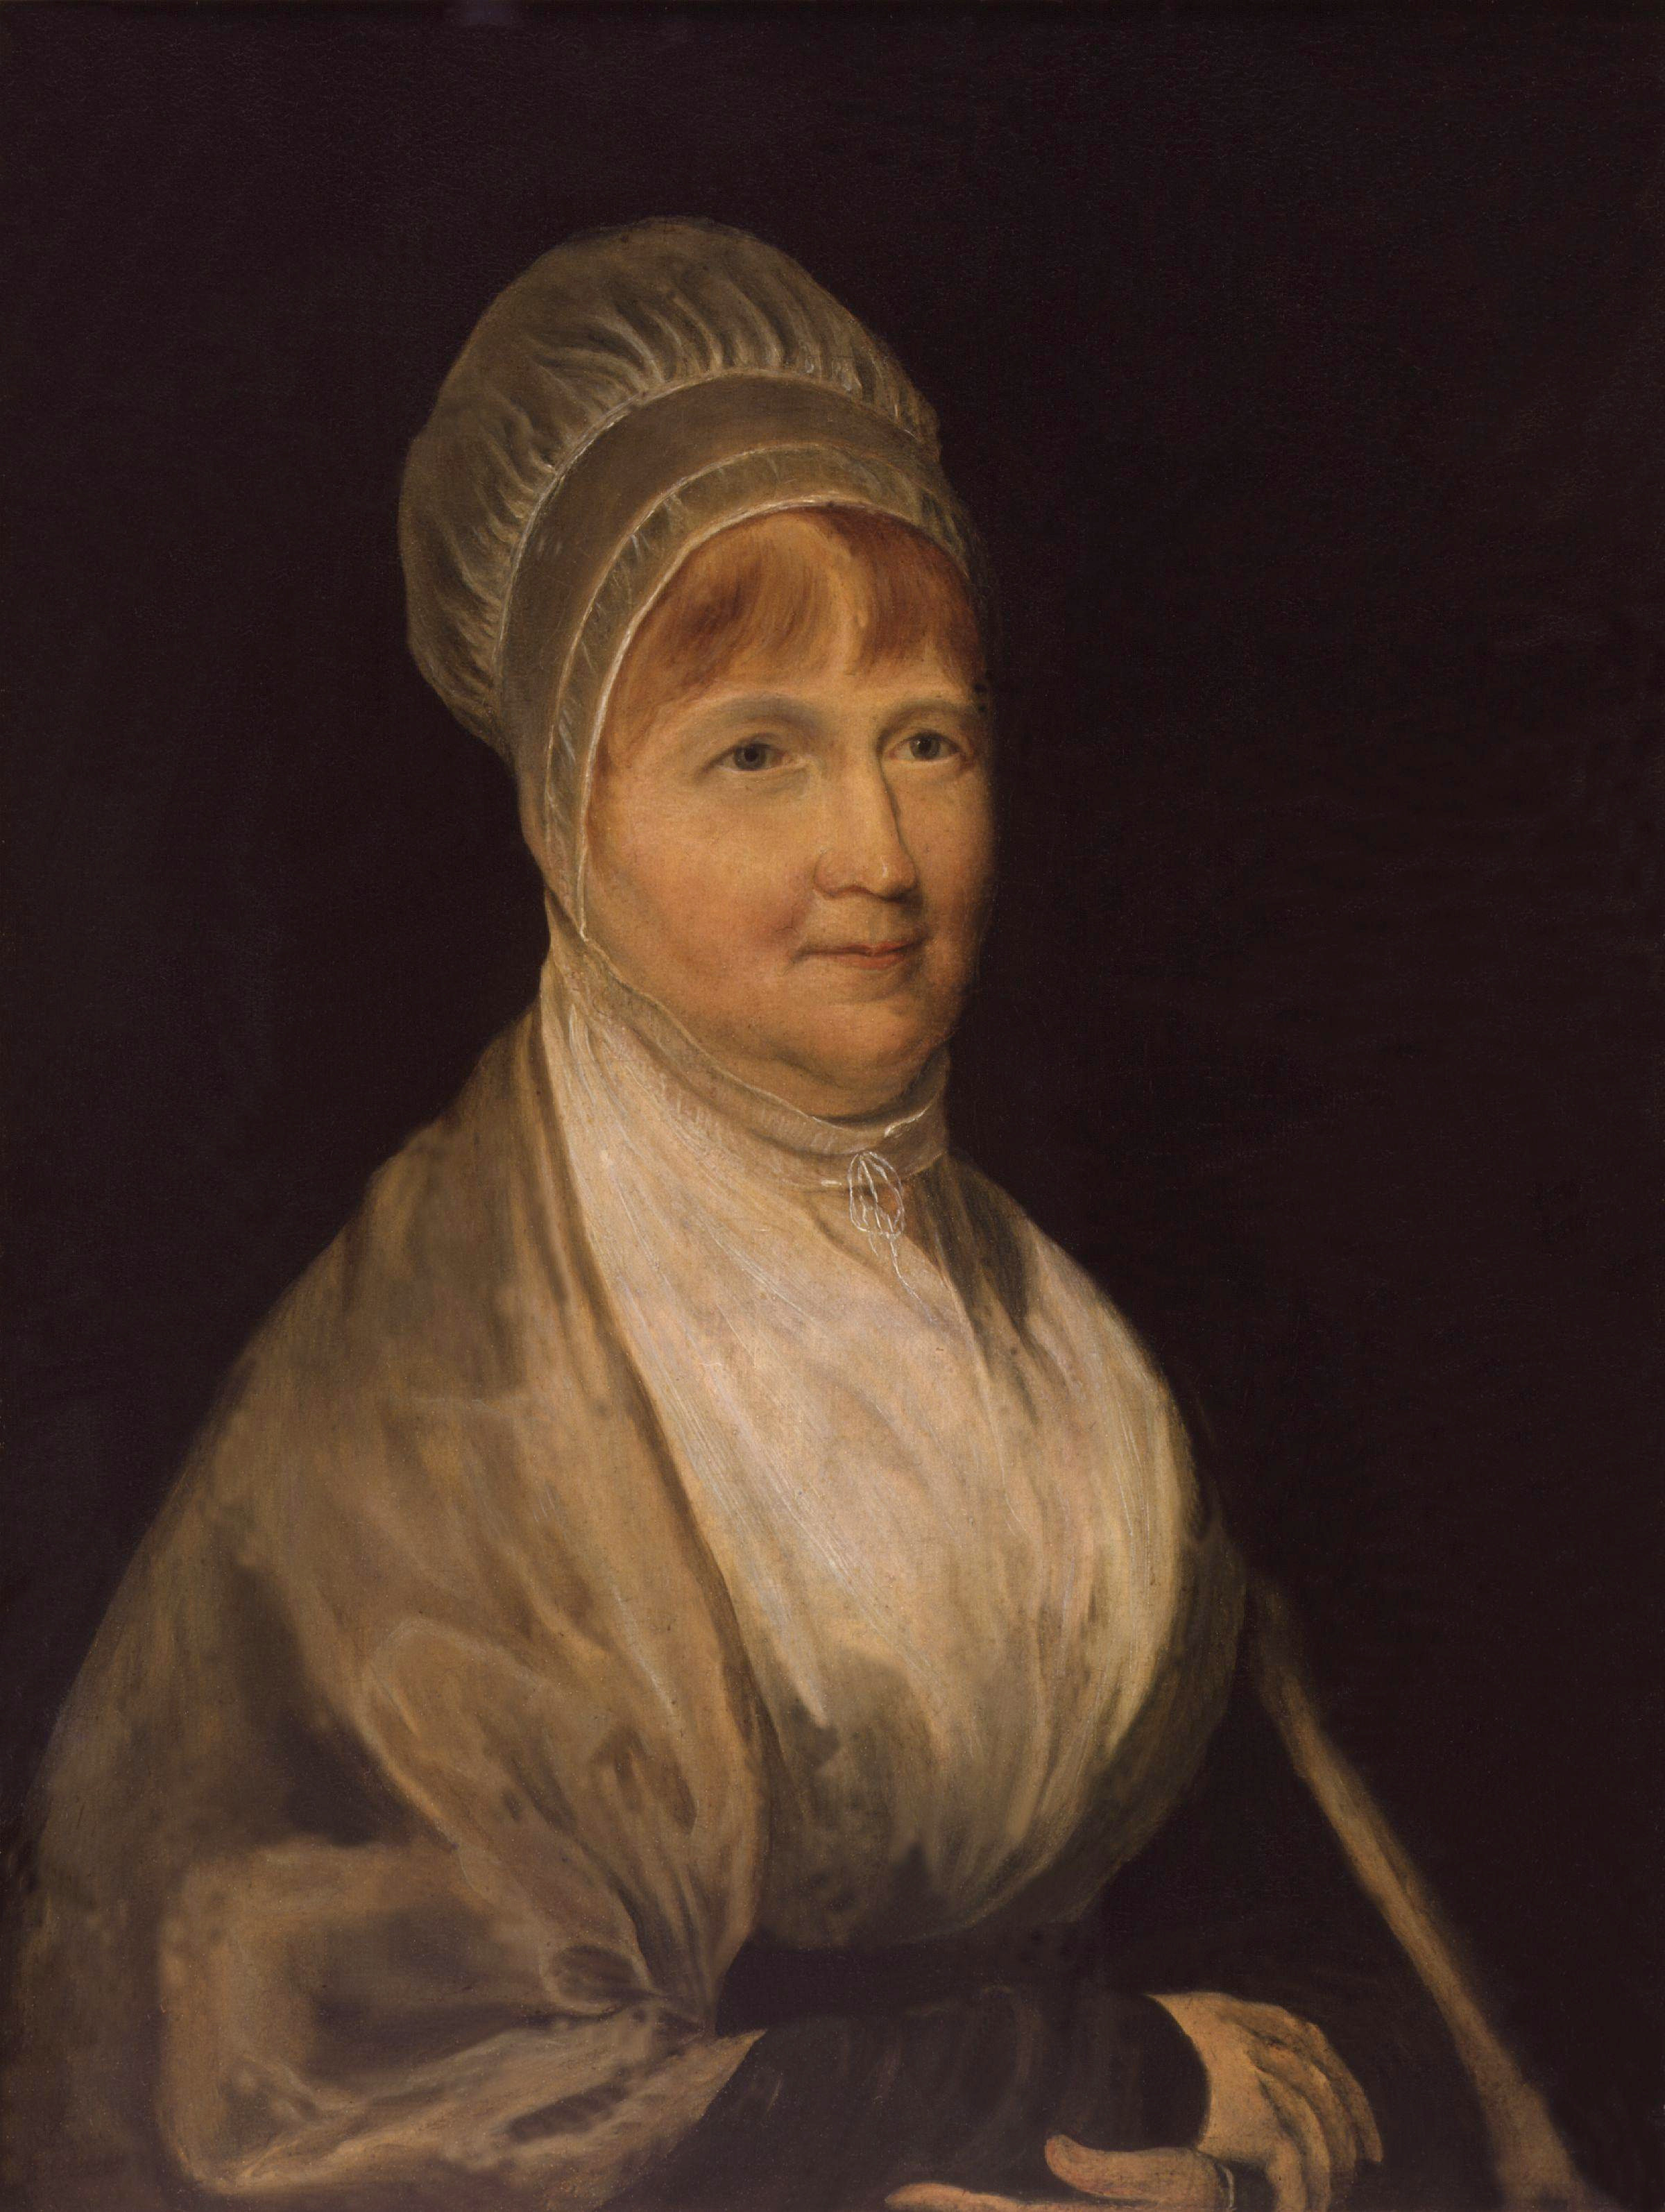 http://upload.wikimedia.org/wikipedia/commons/1/1c/Elizabeth_Fry_by_Charles_Robert_Leslie.jpg